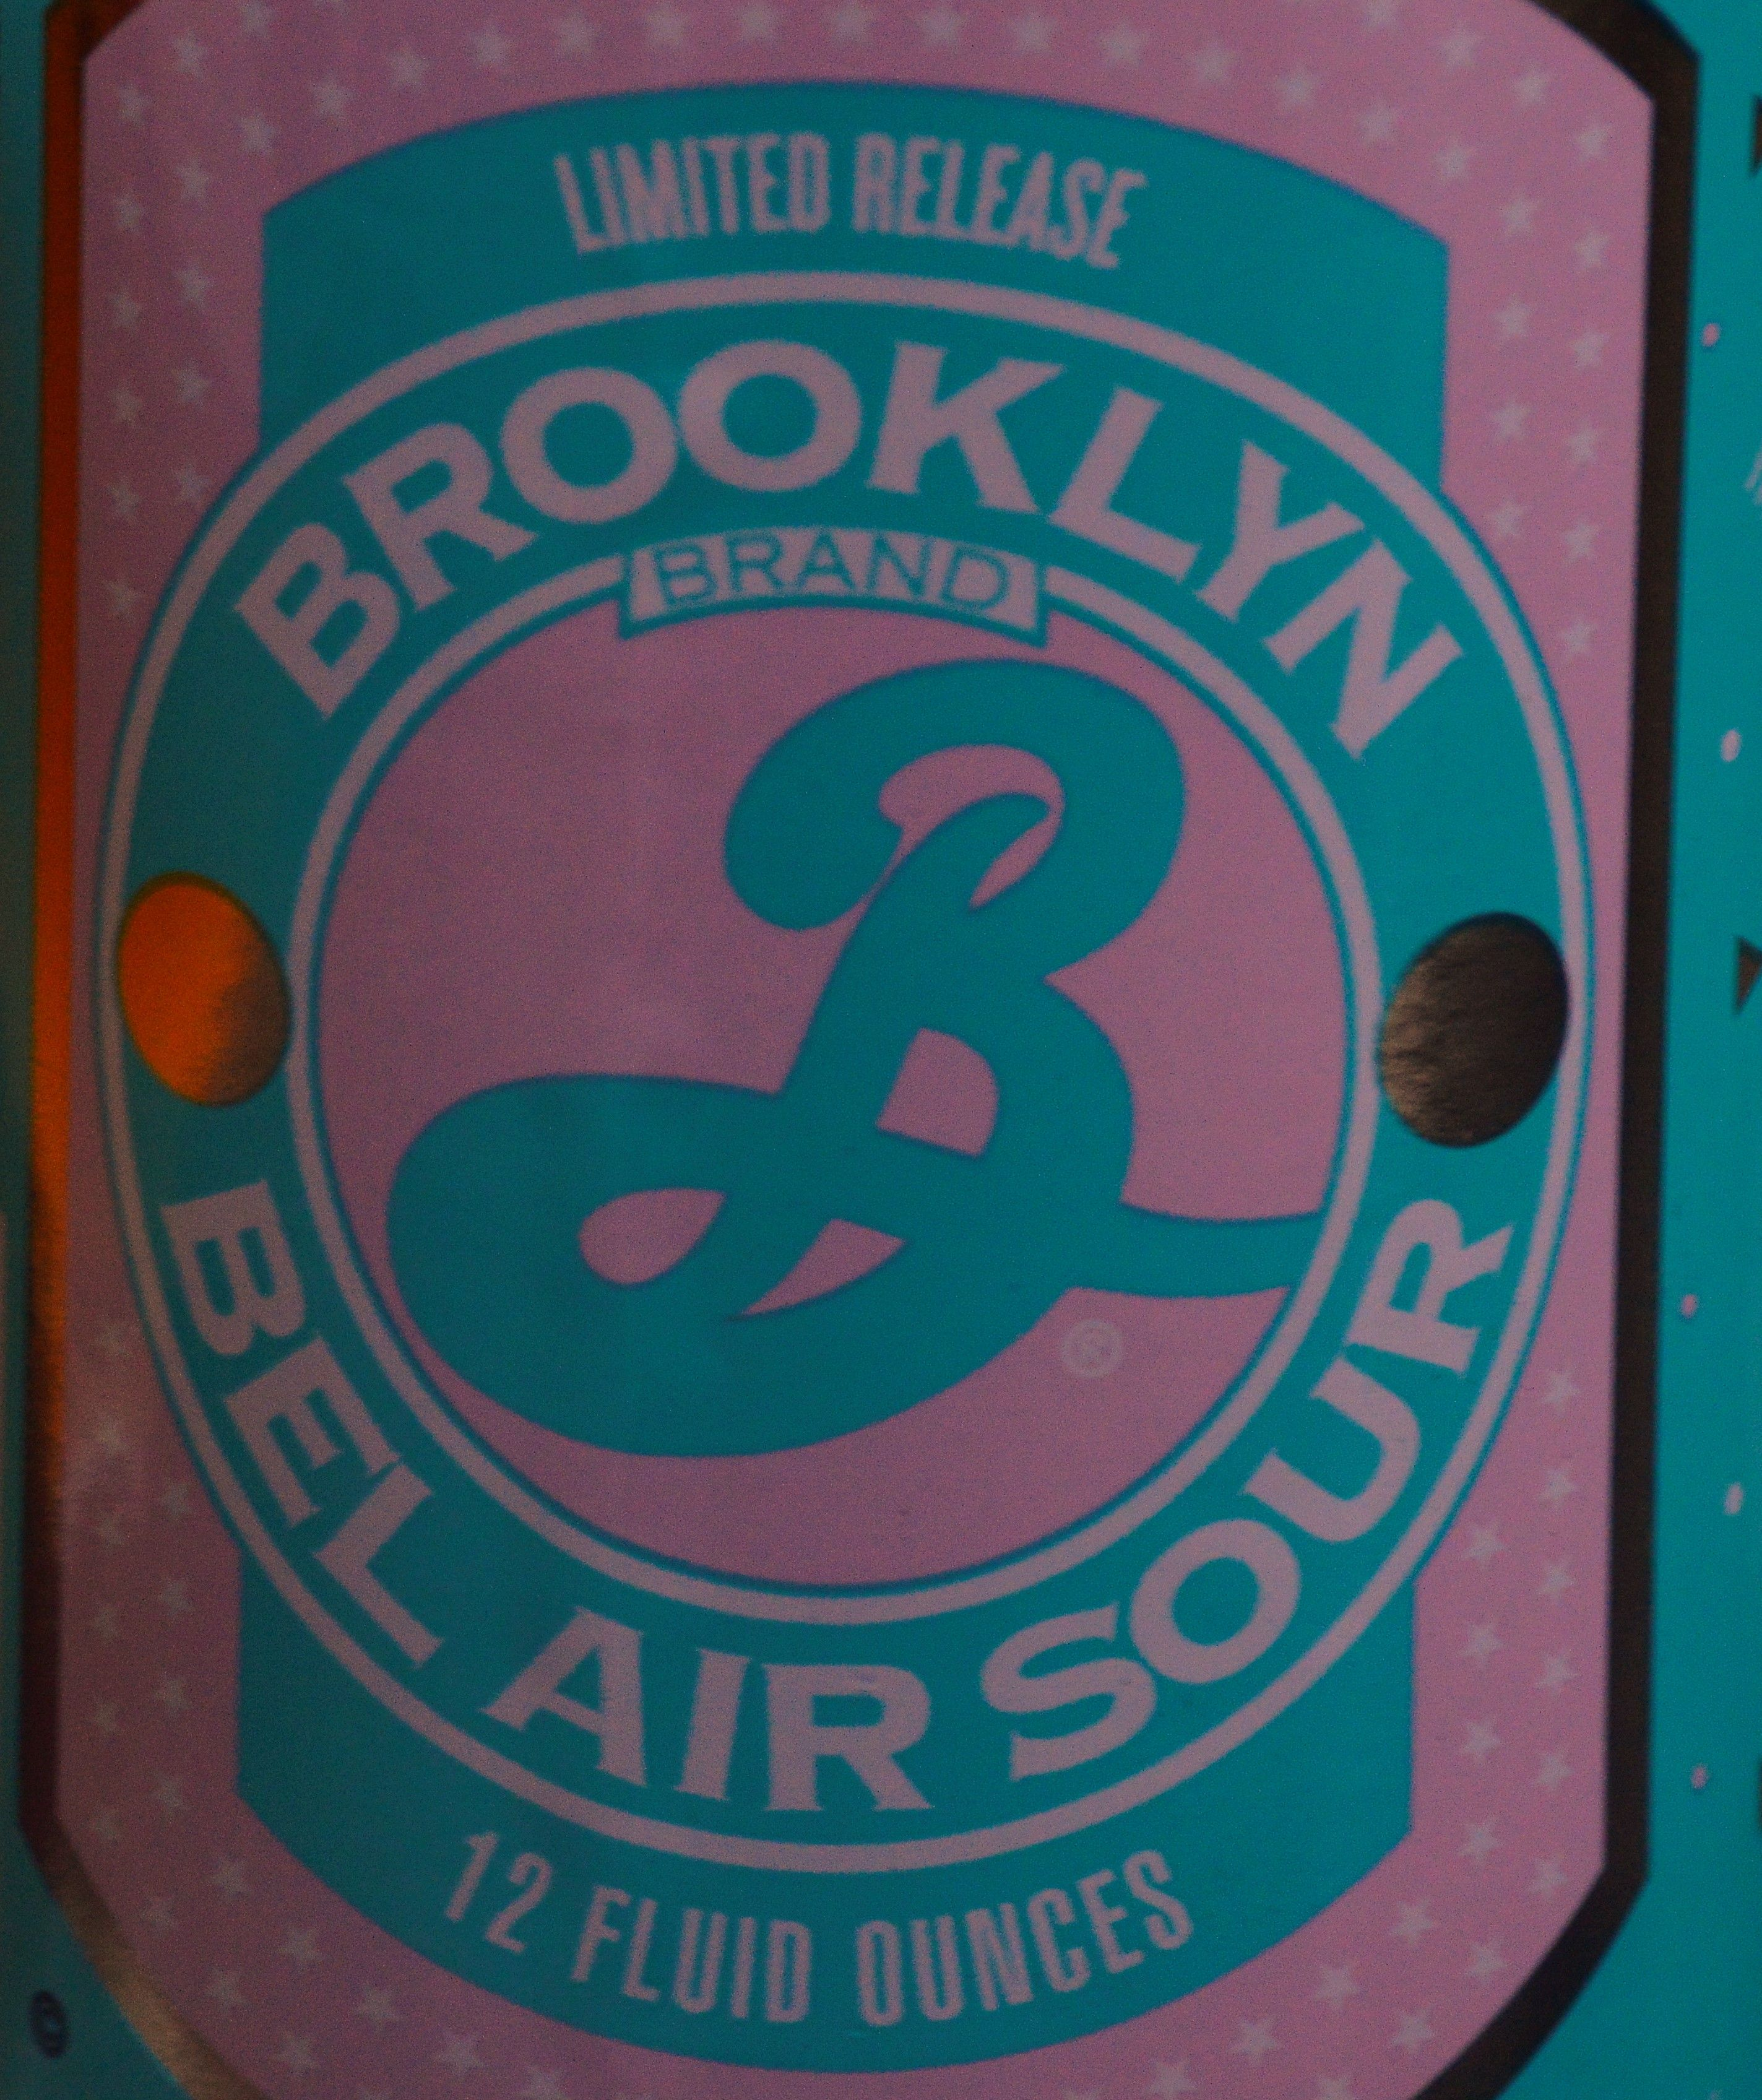 Brooklyn Bel Air Sour Cider drinks, Cider, Sour